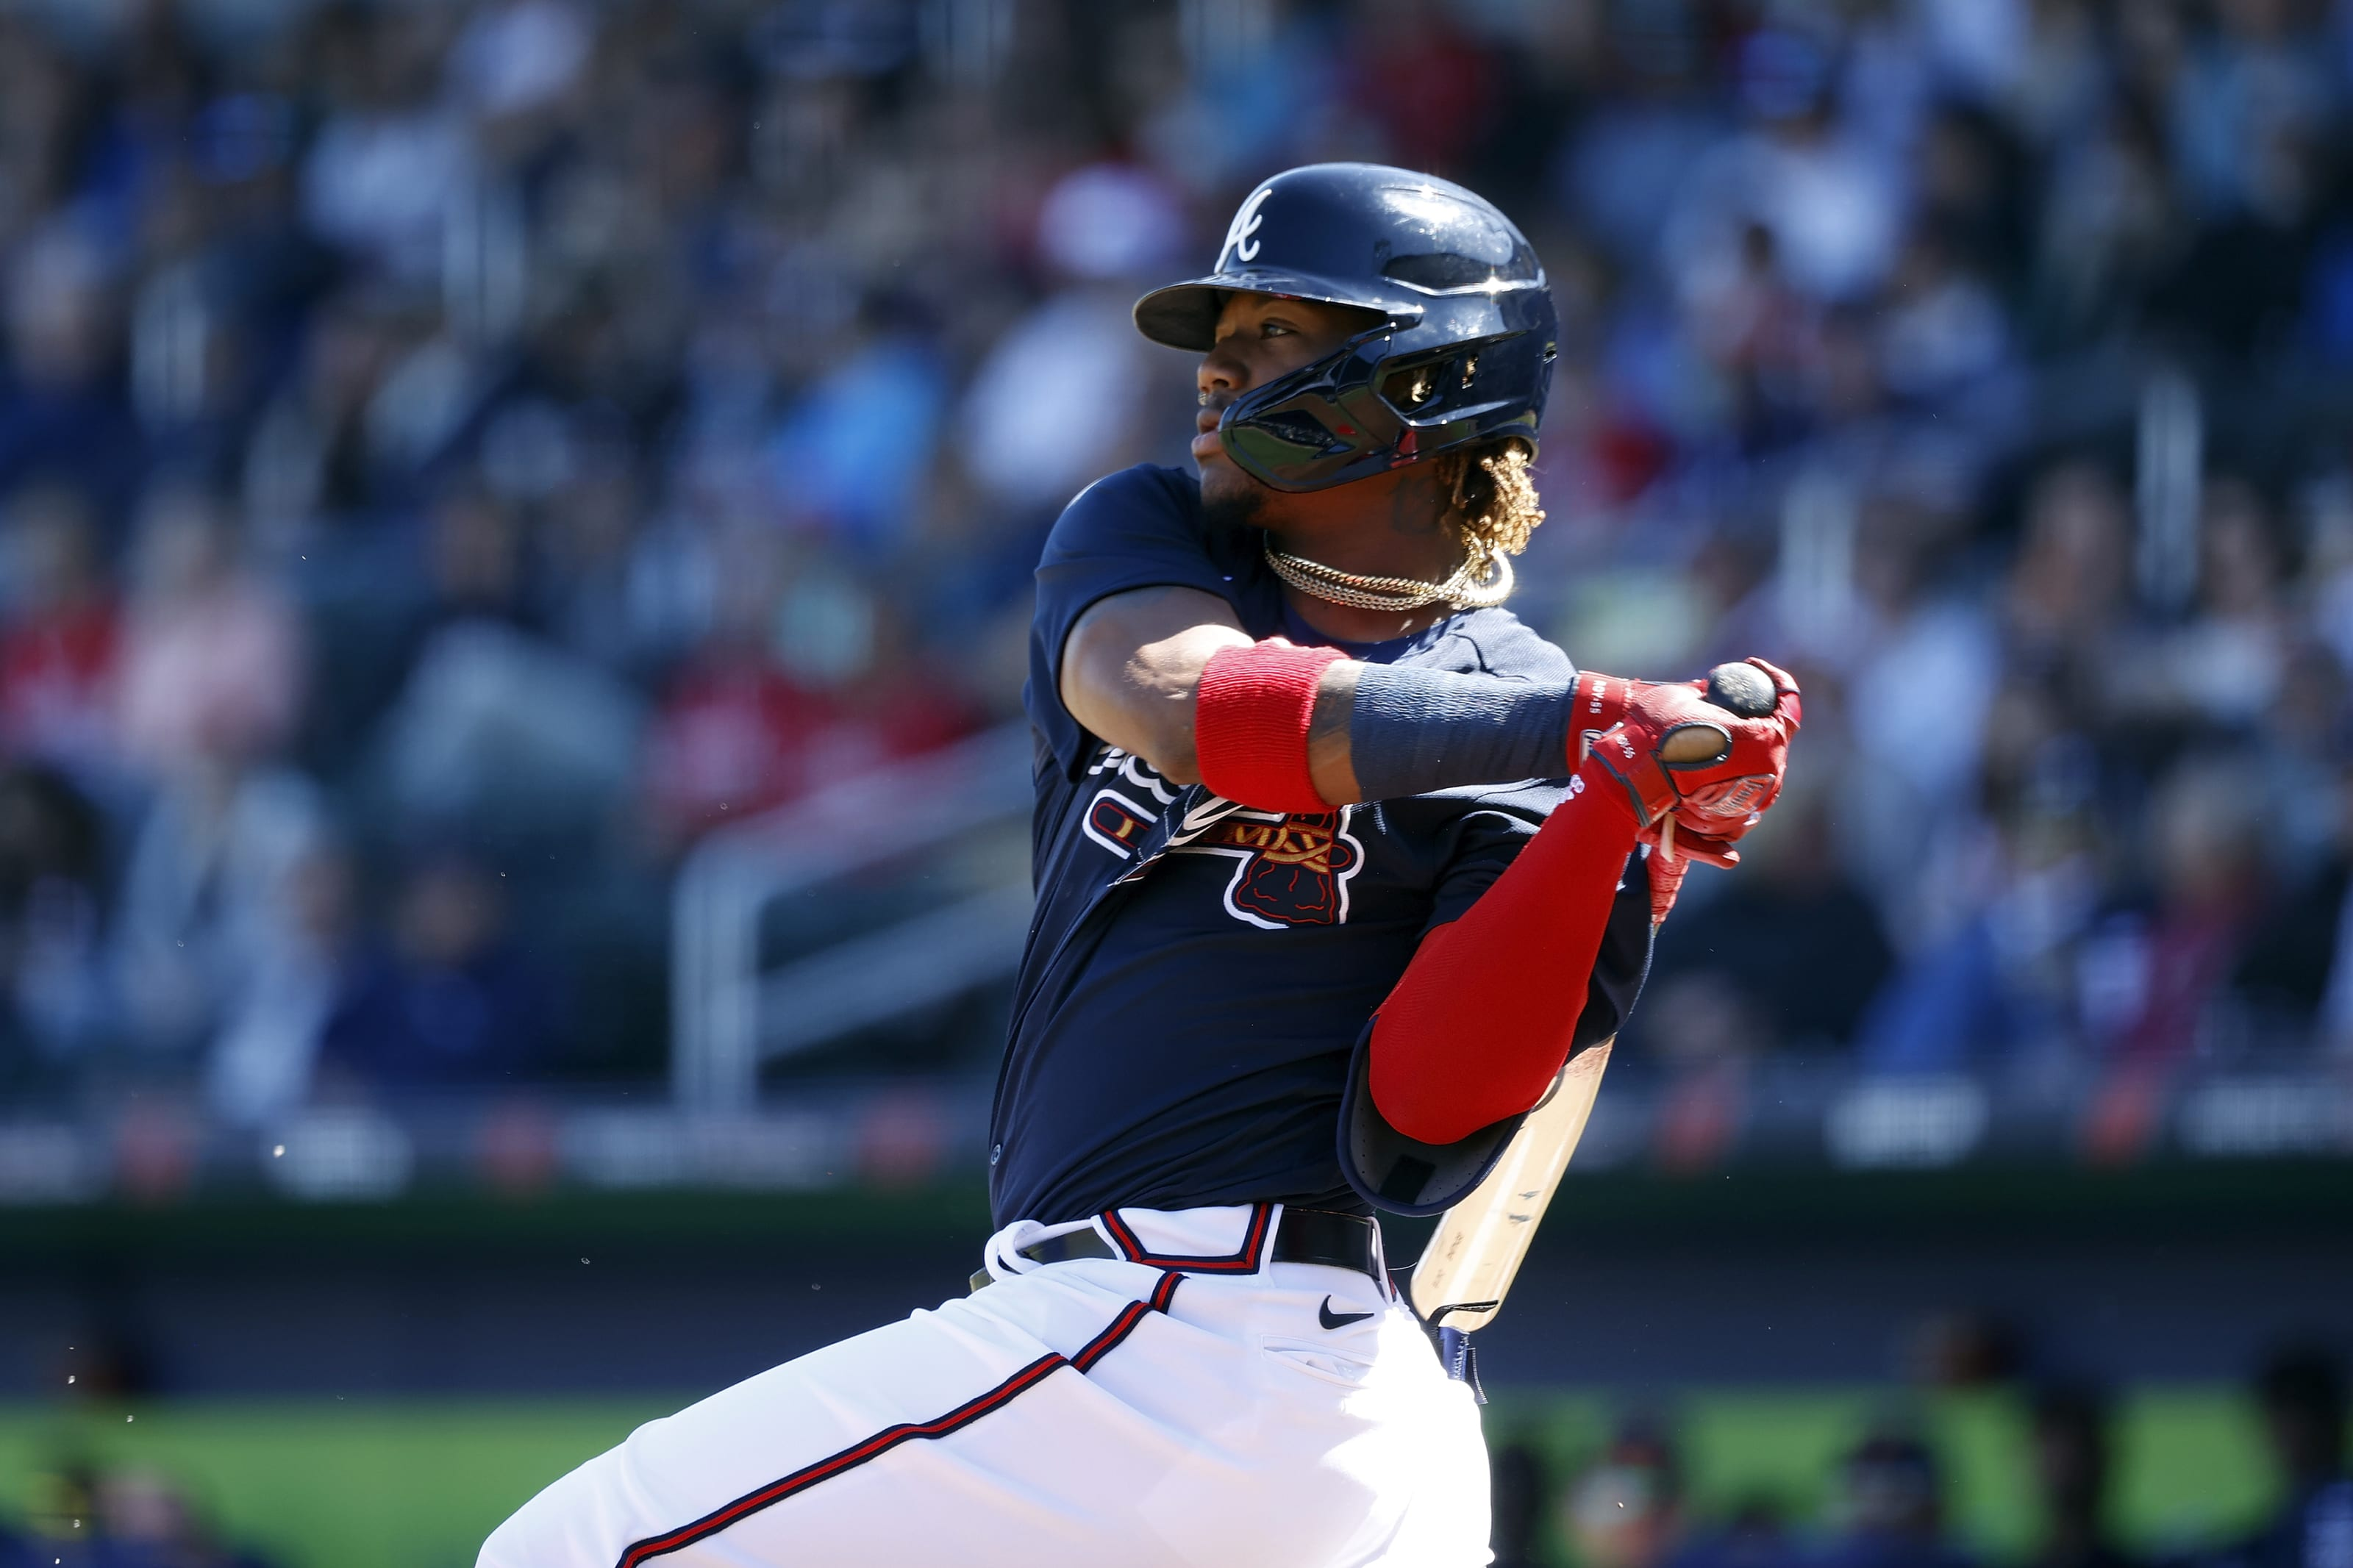 Best Mlb Players 2021 Atlanta Braves Top 3 to Crack MLB's 'Top 100 Right Now' in 2021